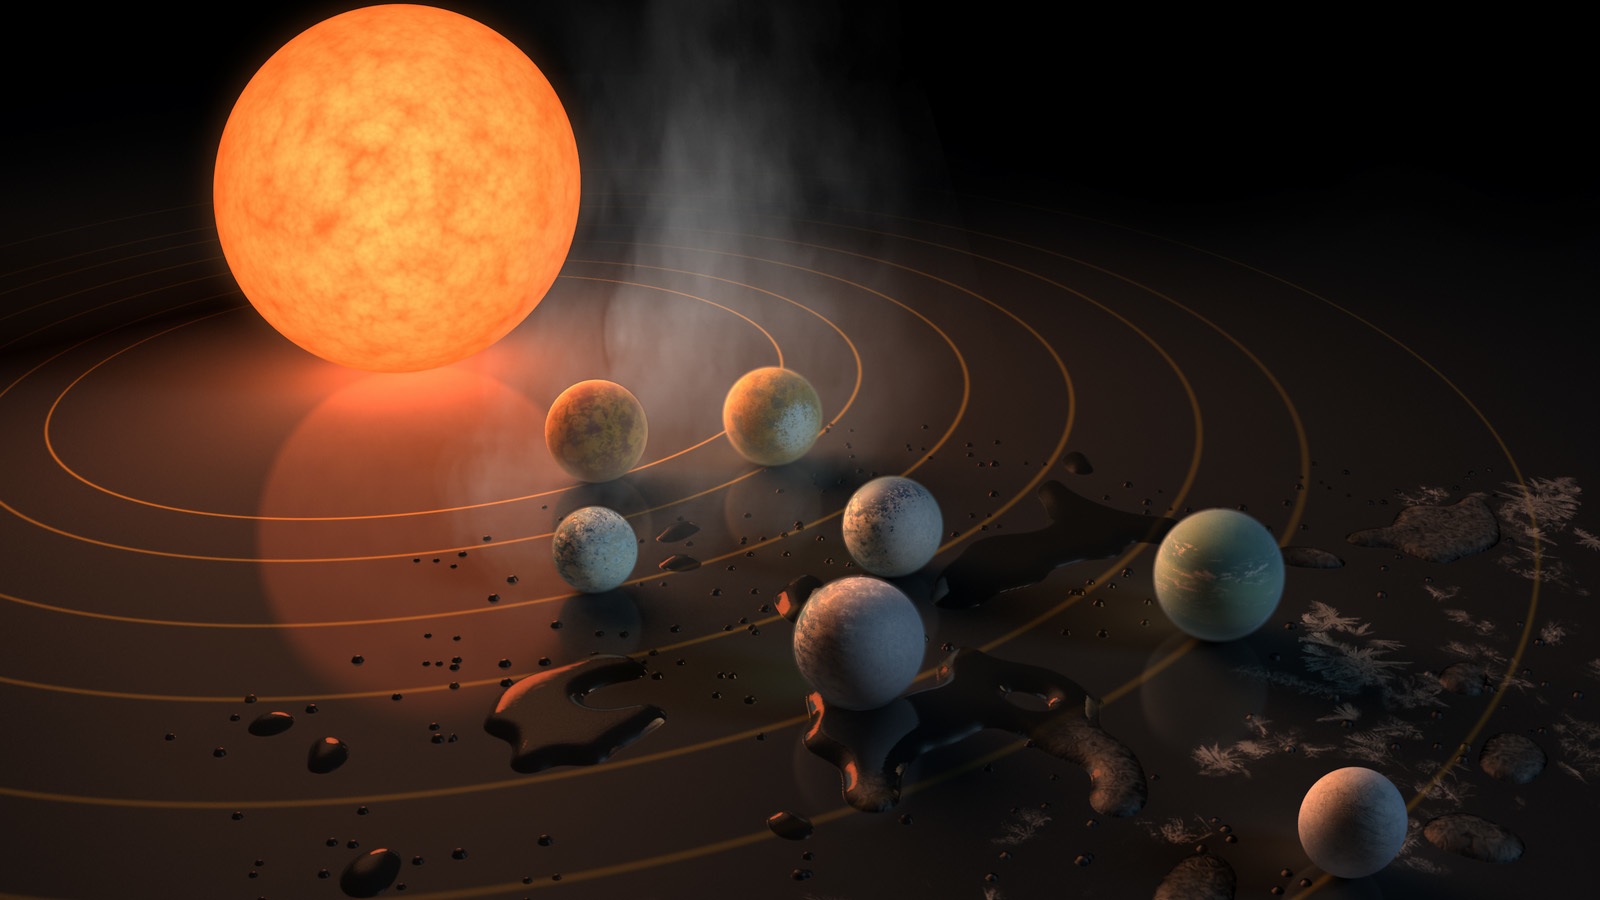 Illustration of the TRAPPIST-1 planets